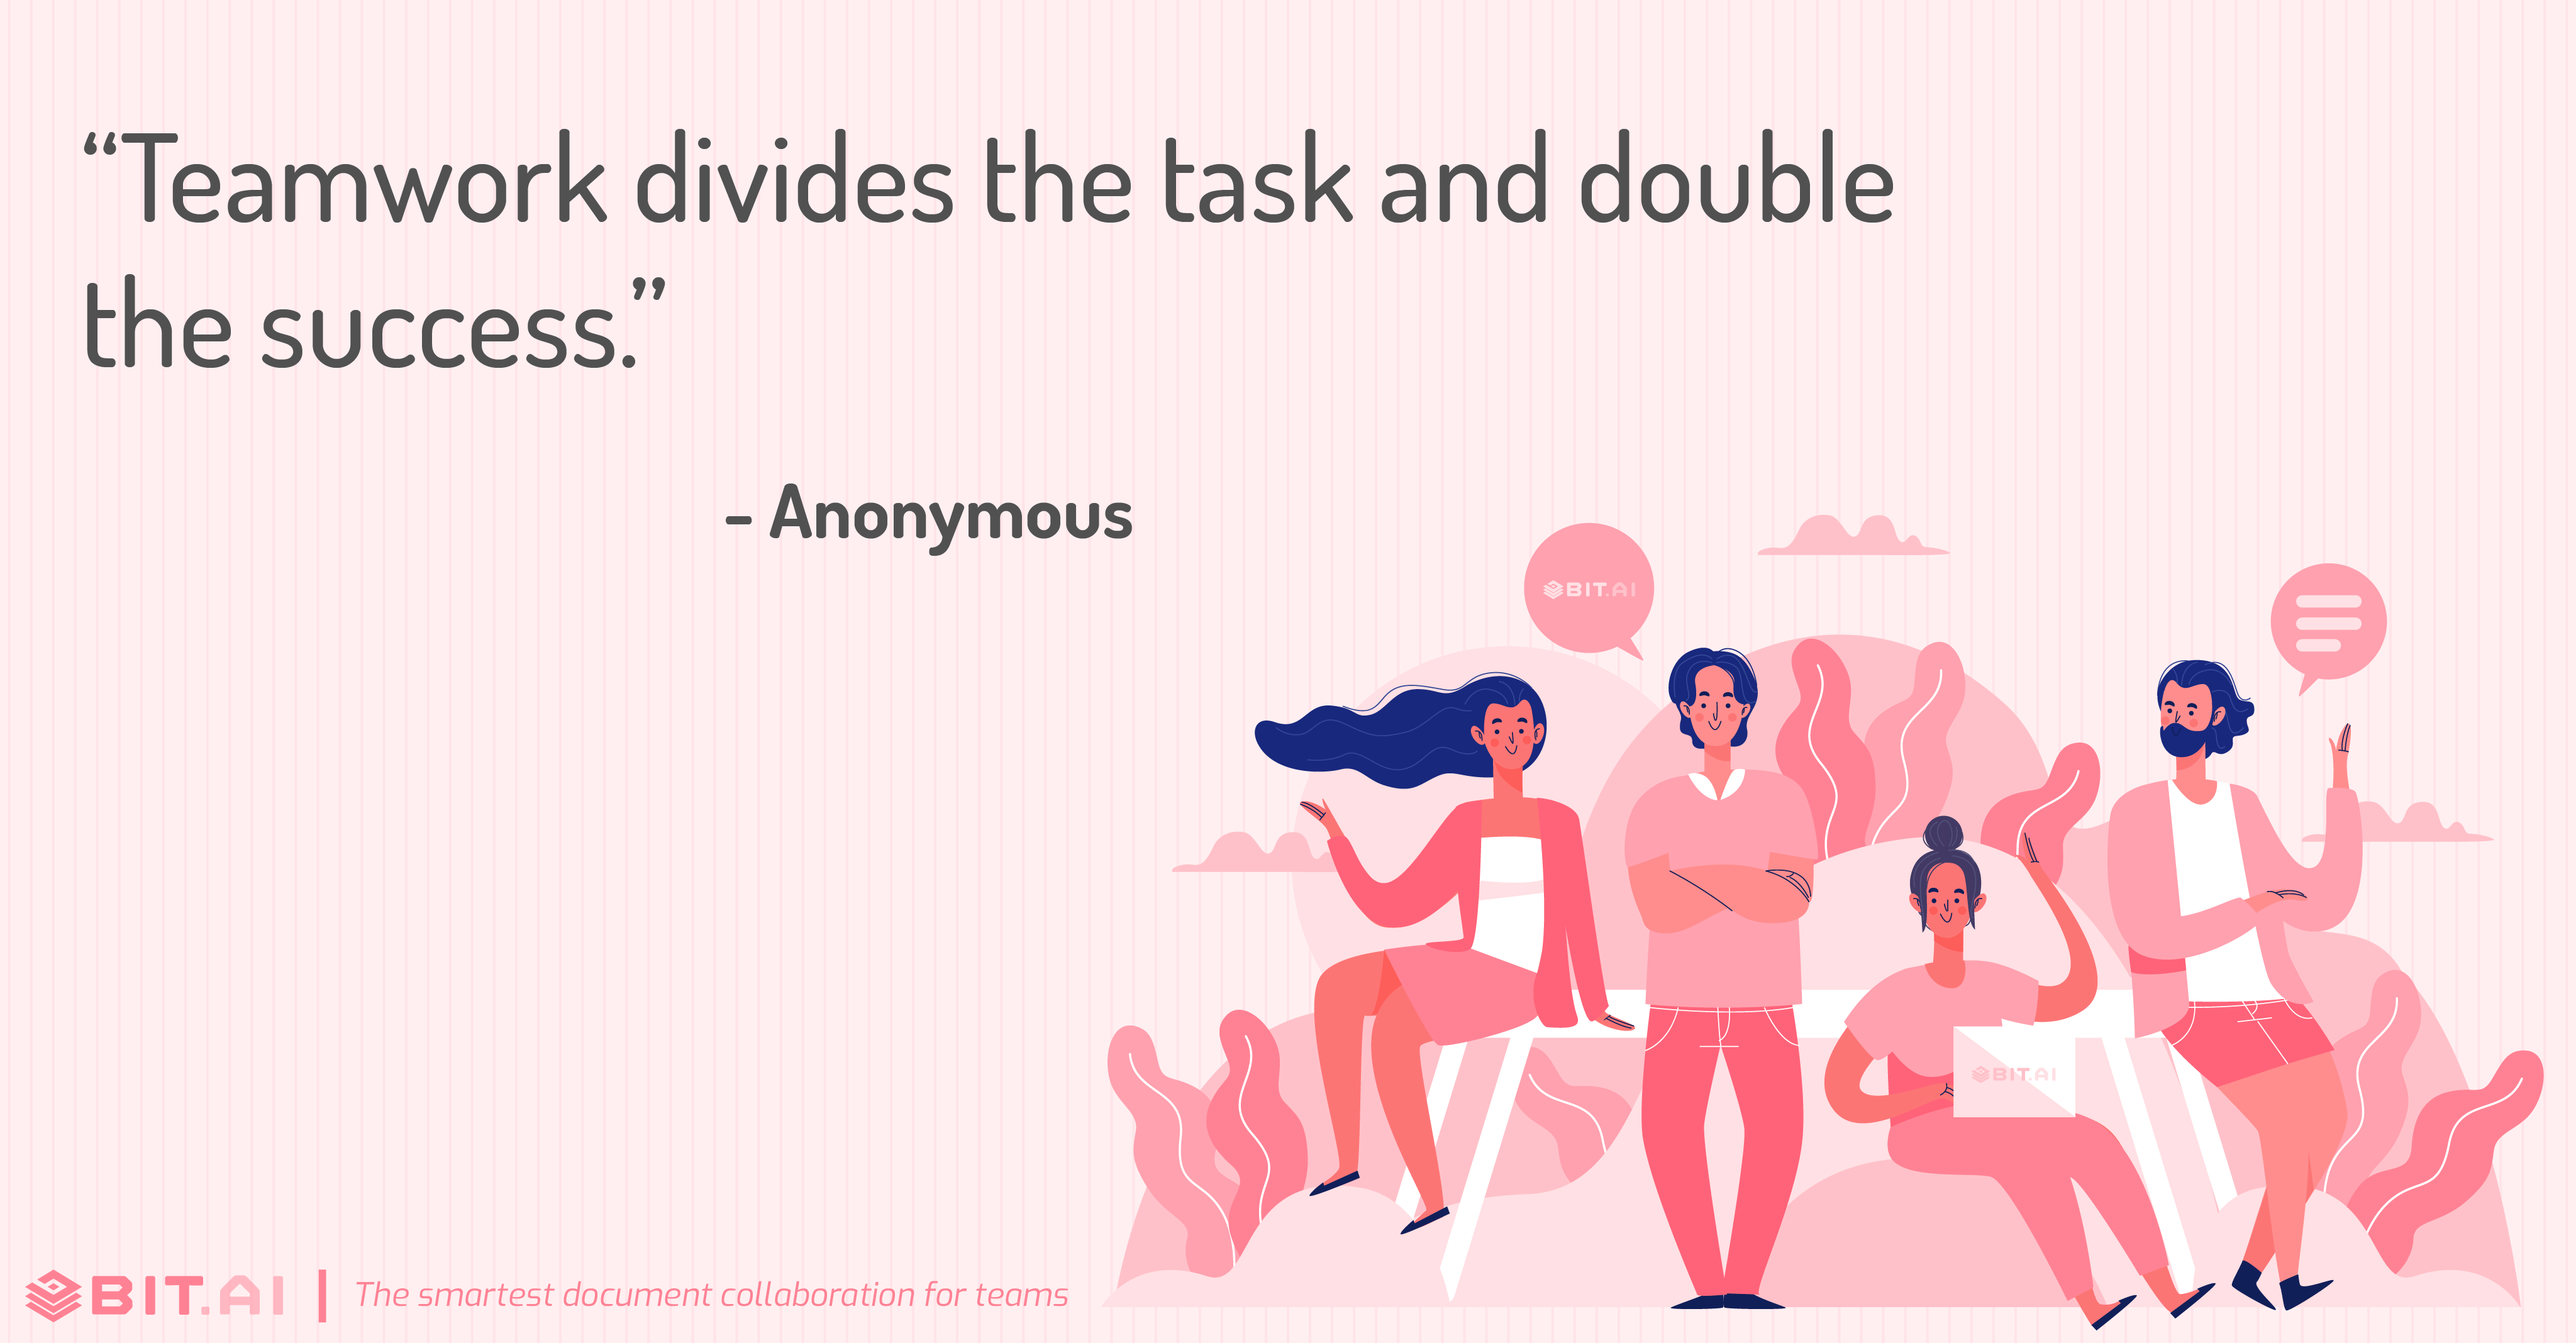 """Teamwork divides the task and double the success."" - Anonymous"